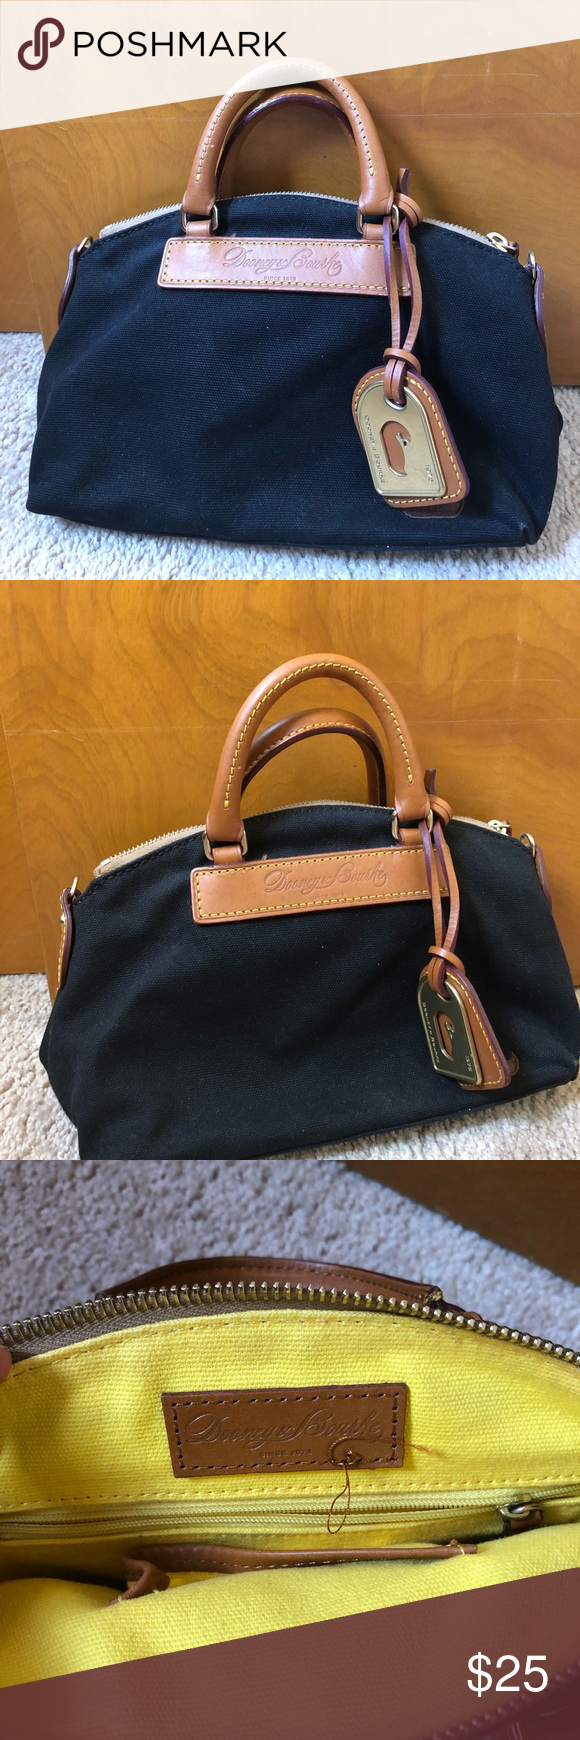 045e3006d932 Dooney and Bourke small purse Great purse